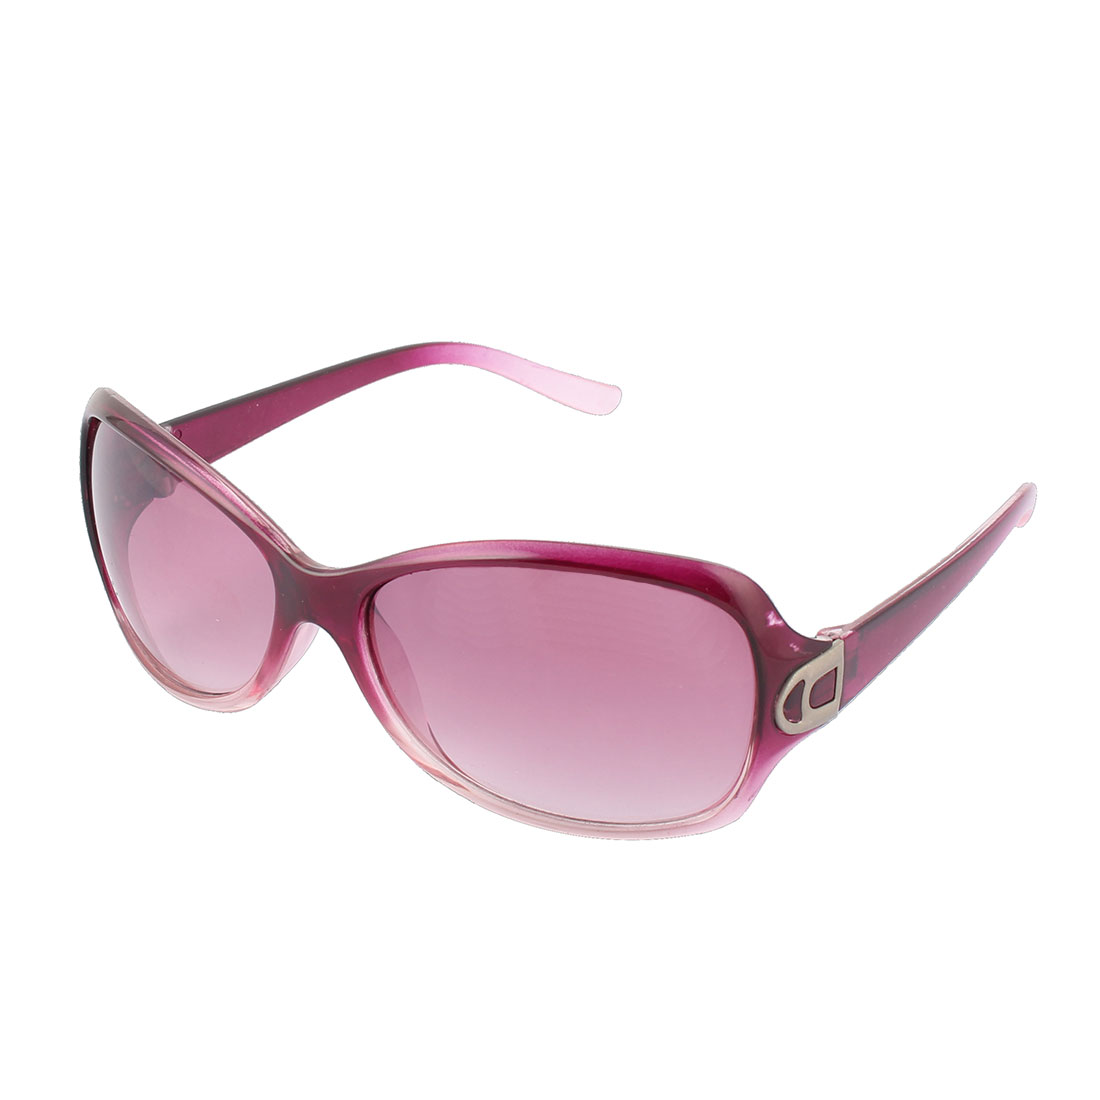 Women Plastic Round Full Flame Rim Sun Shield UV Protection Lens Sunglass Fuchsia